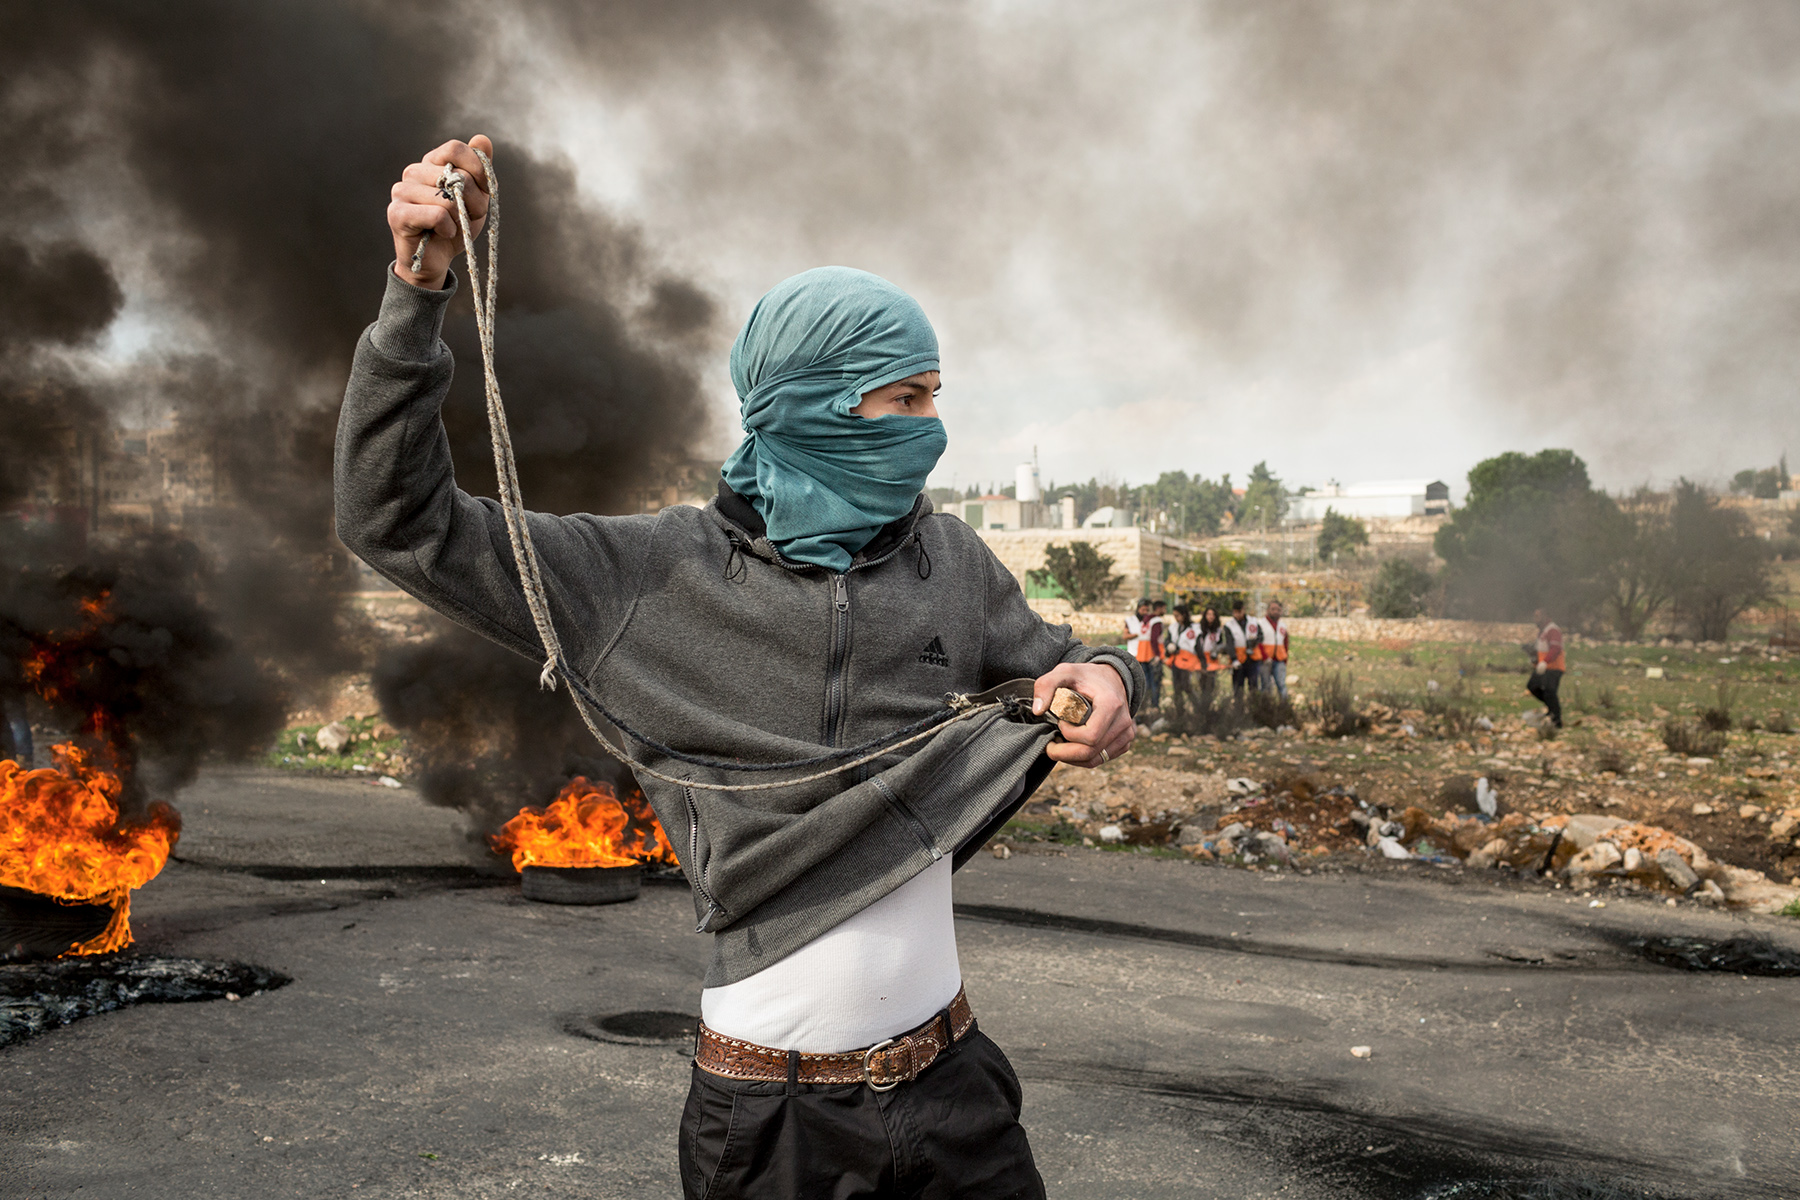 West Bank, December 2017 - Young Palestinians clash with Israeli soldiers following US president Donald Trump statement on Jerusalem status.